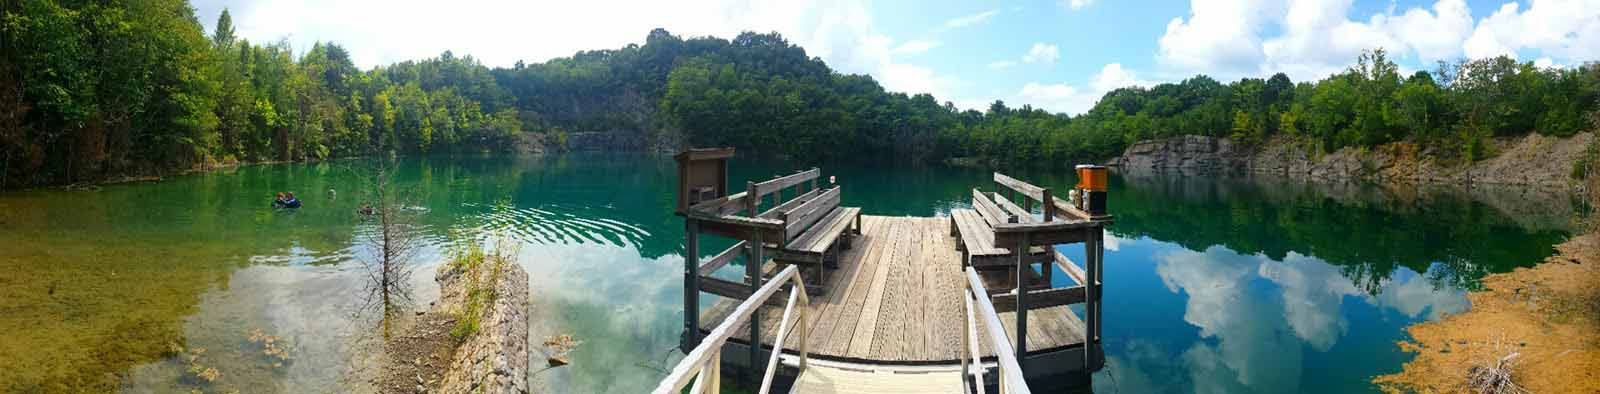 We are a scuba diving resort in Athens, TN that is based around a crystal clear, ten acre quarry lake.